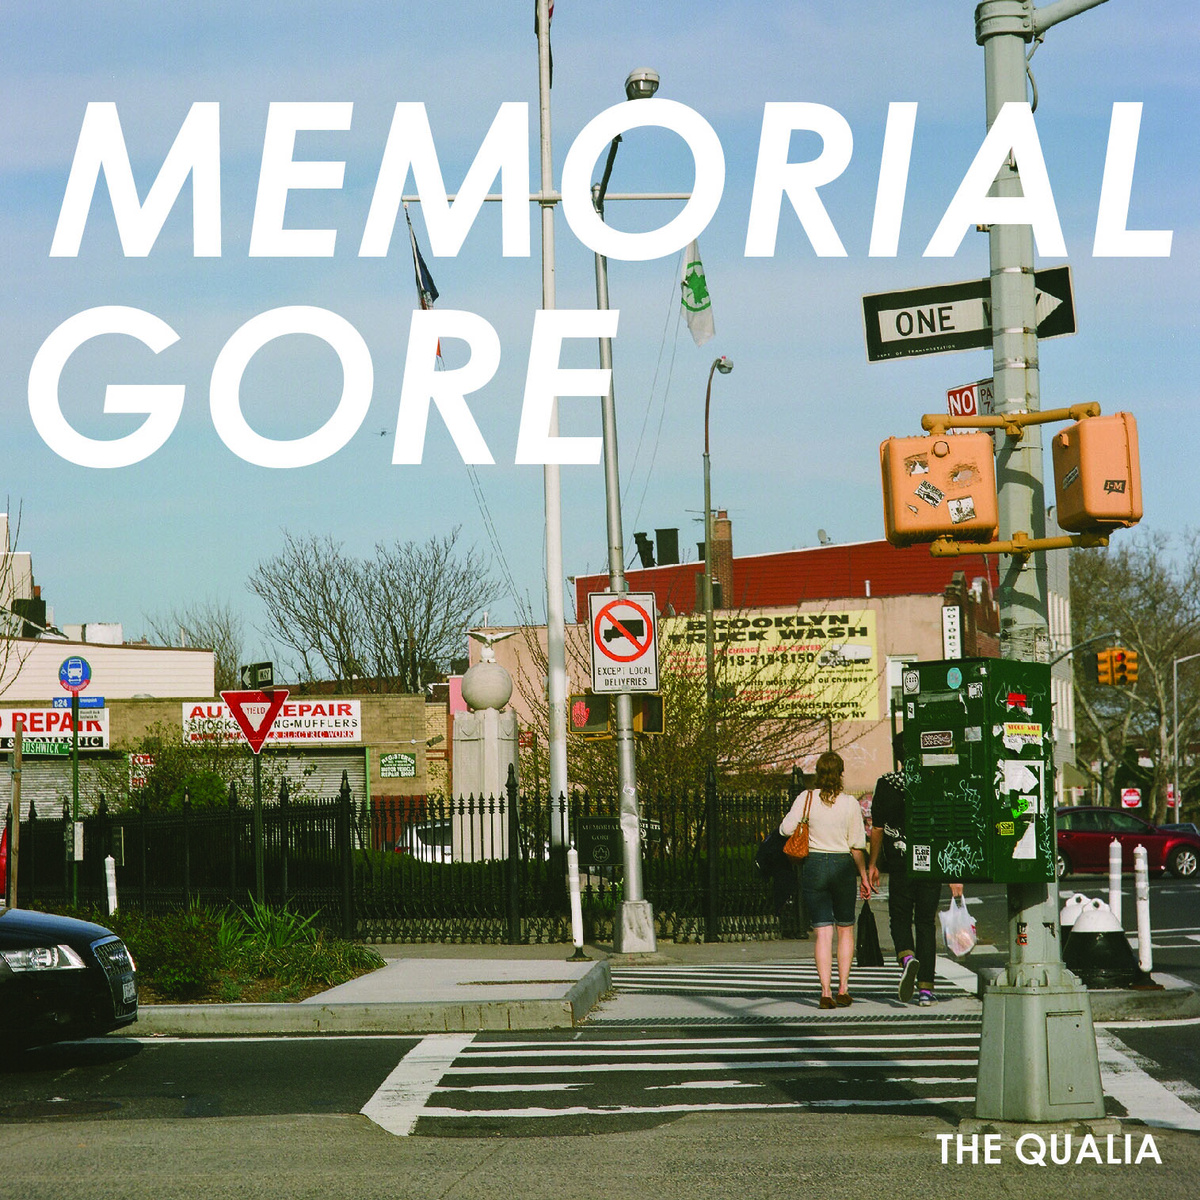 the_qualia_memorial_gore_cover